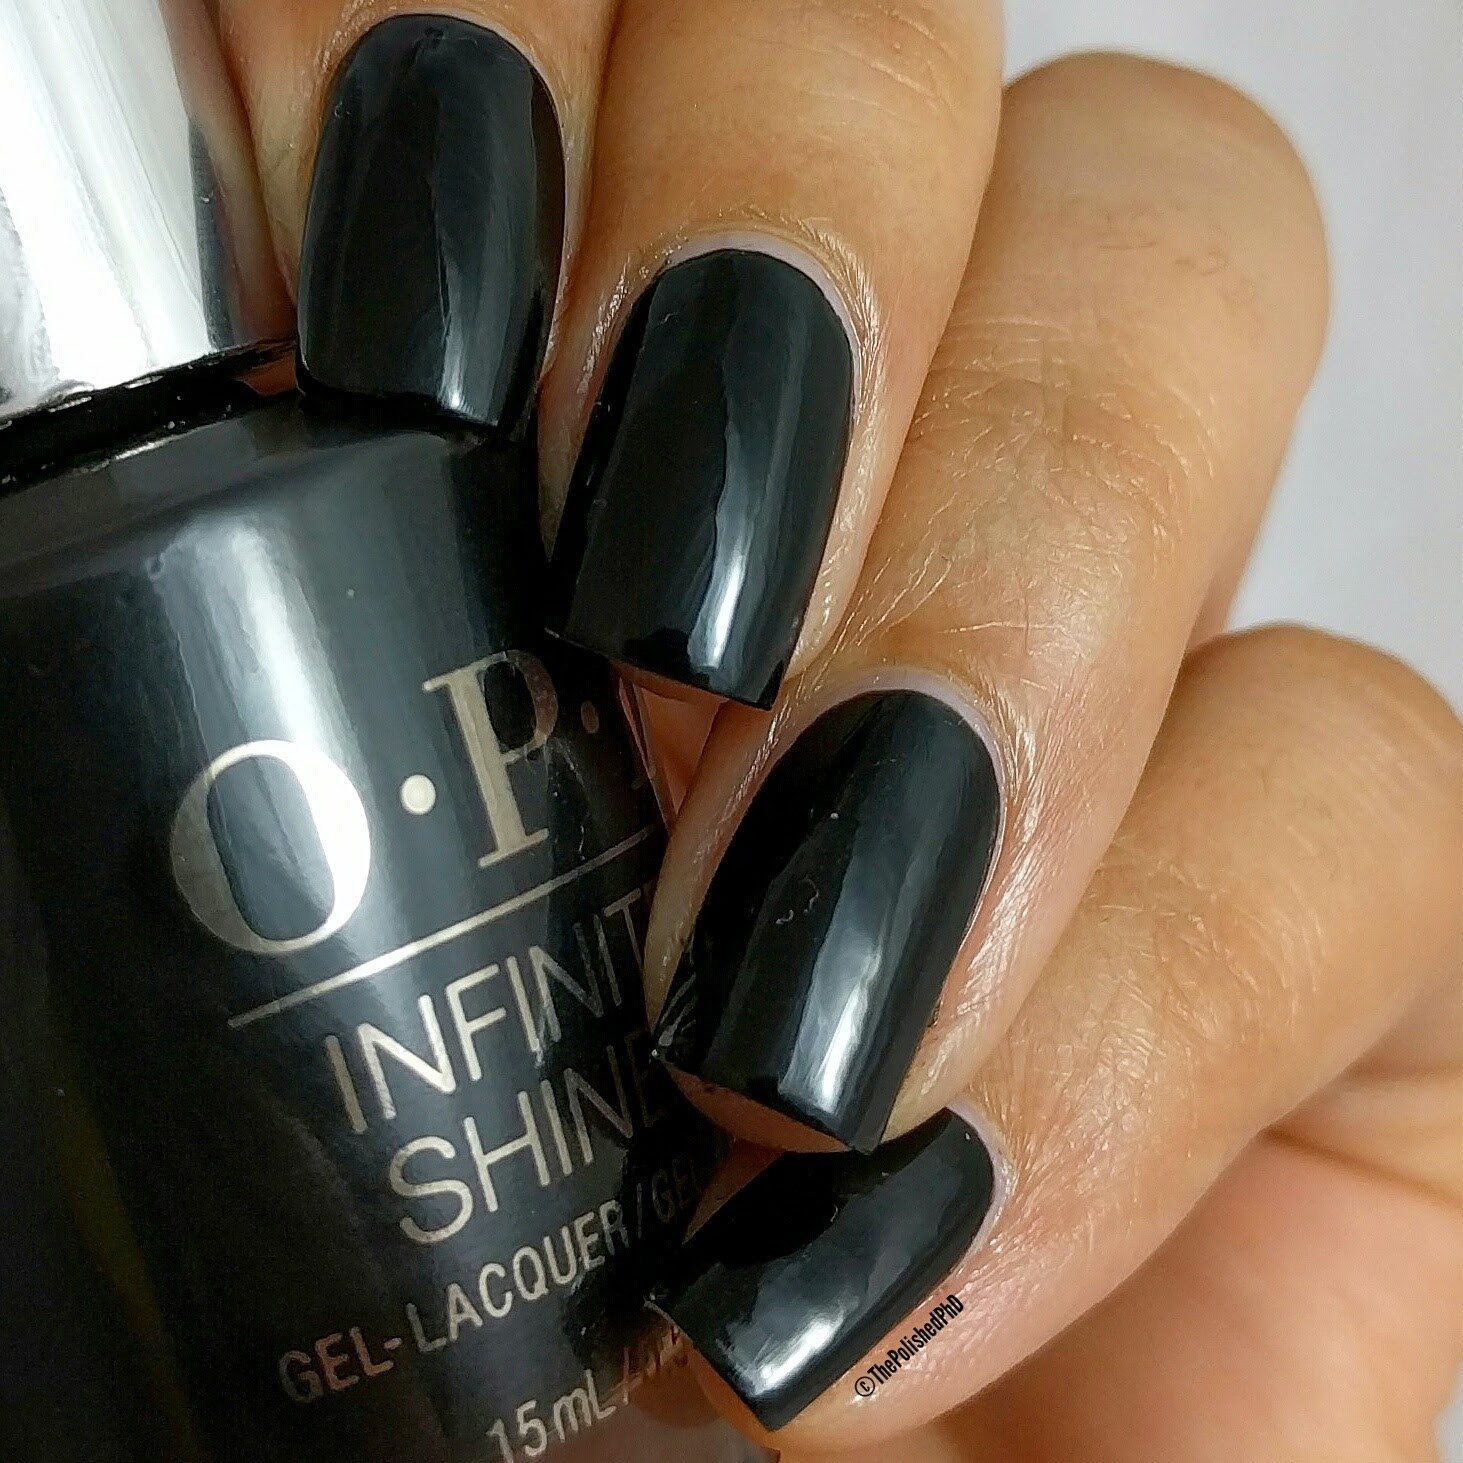 OPI Infinite Shine Swatches and Nail Art | The Polished PhD